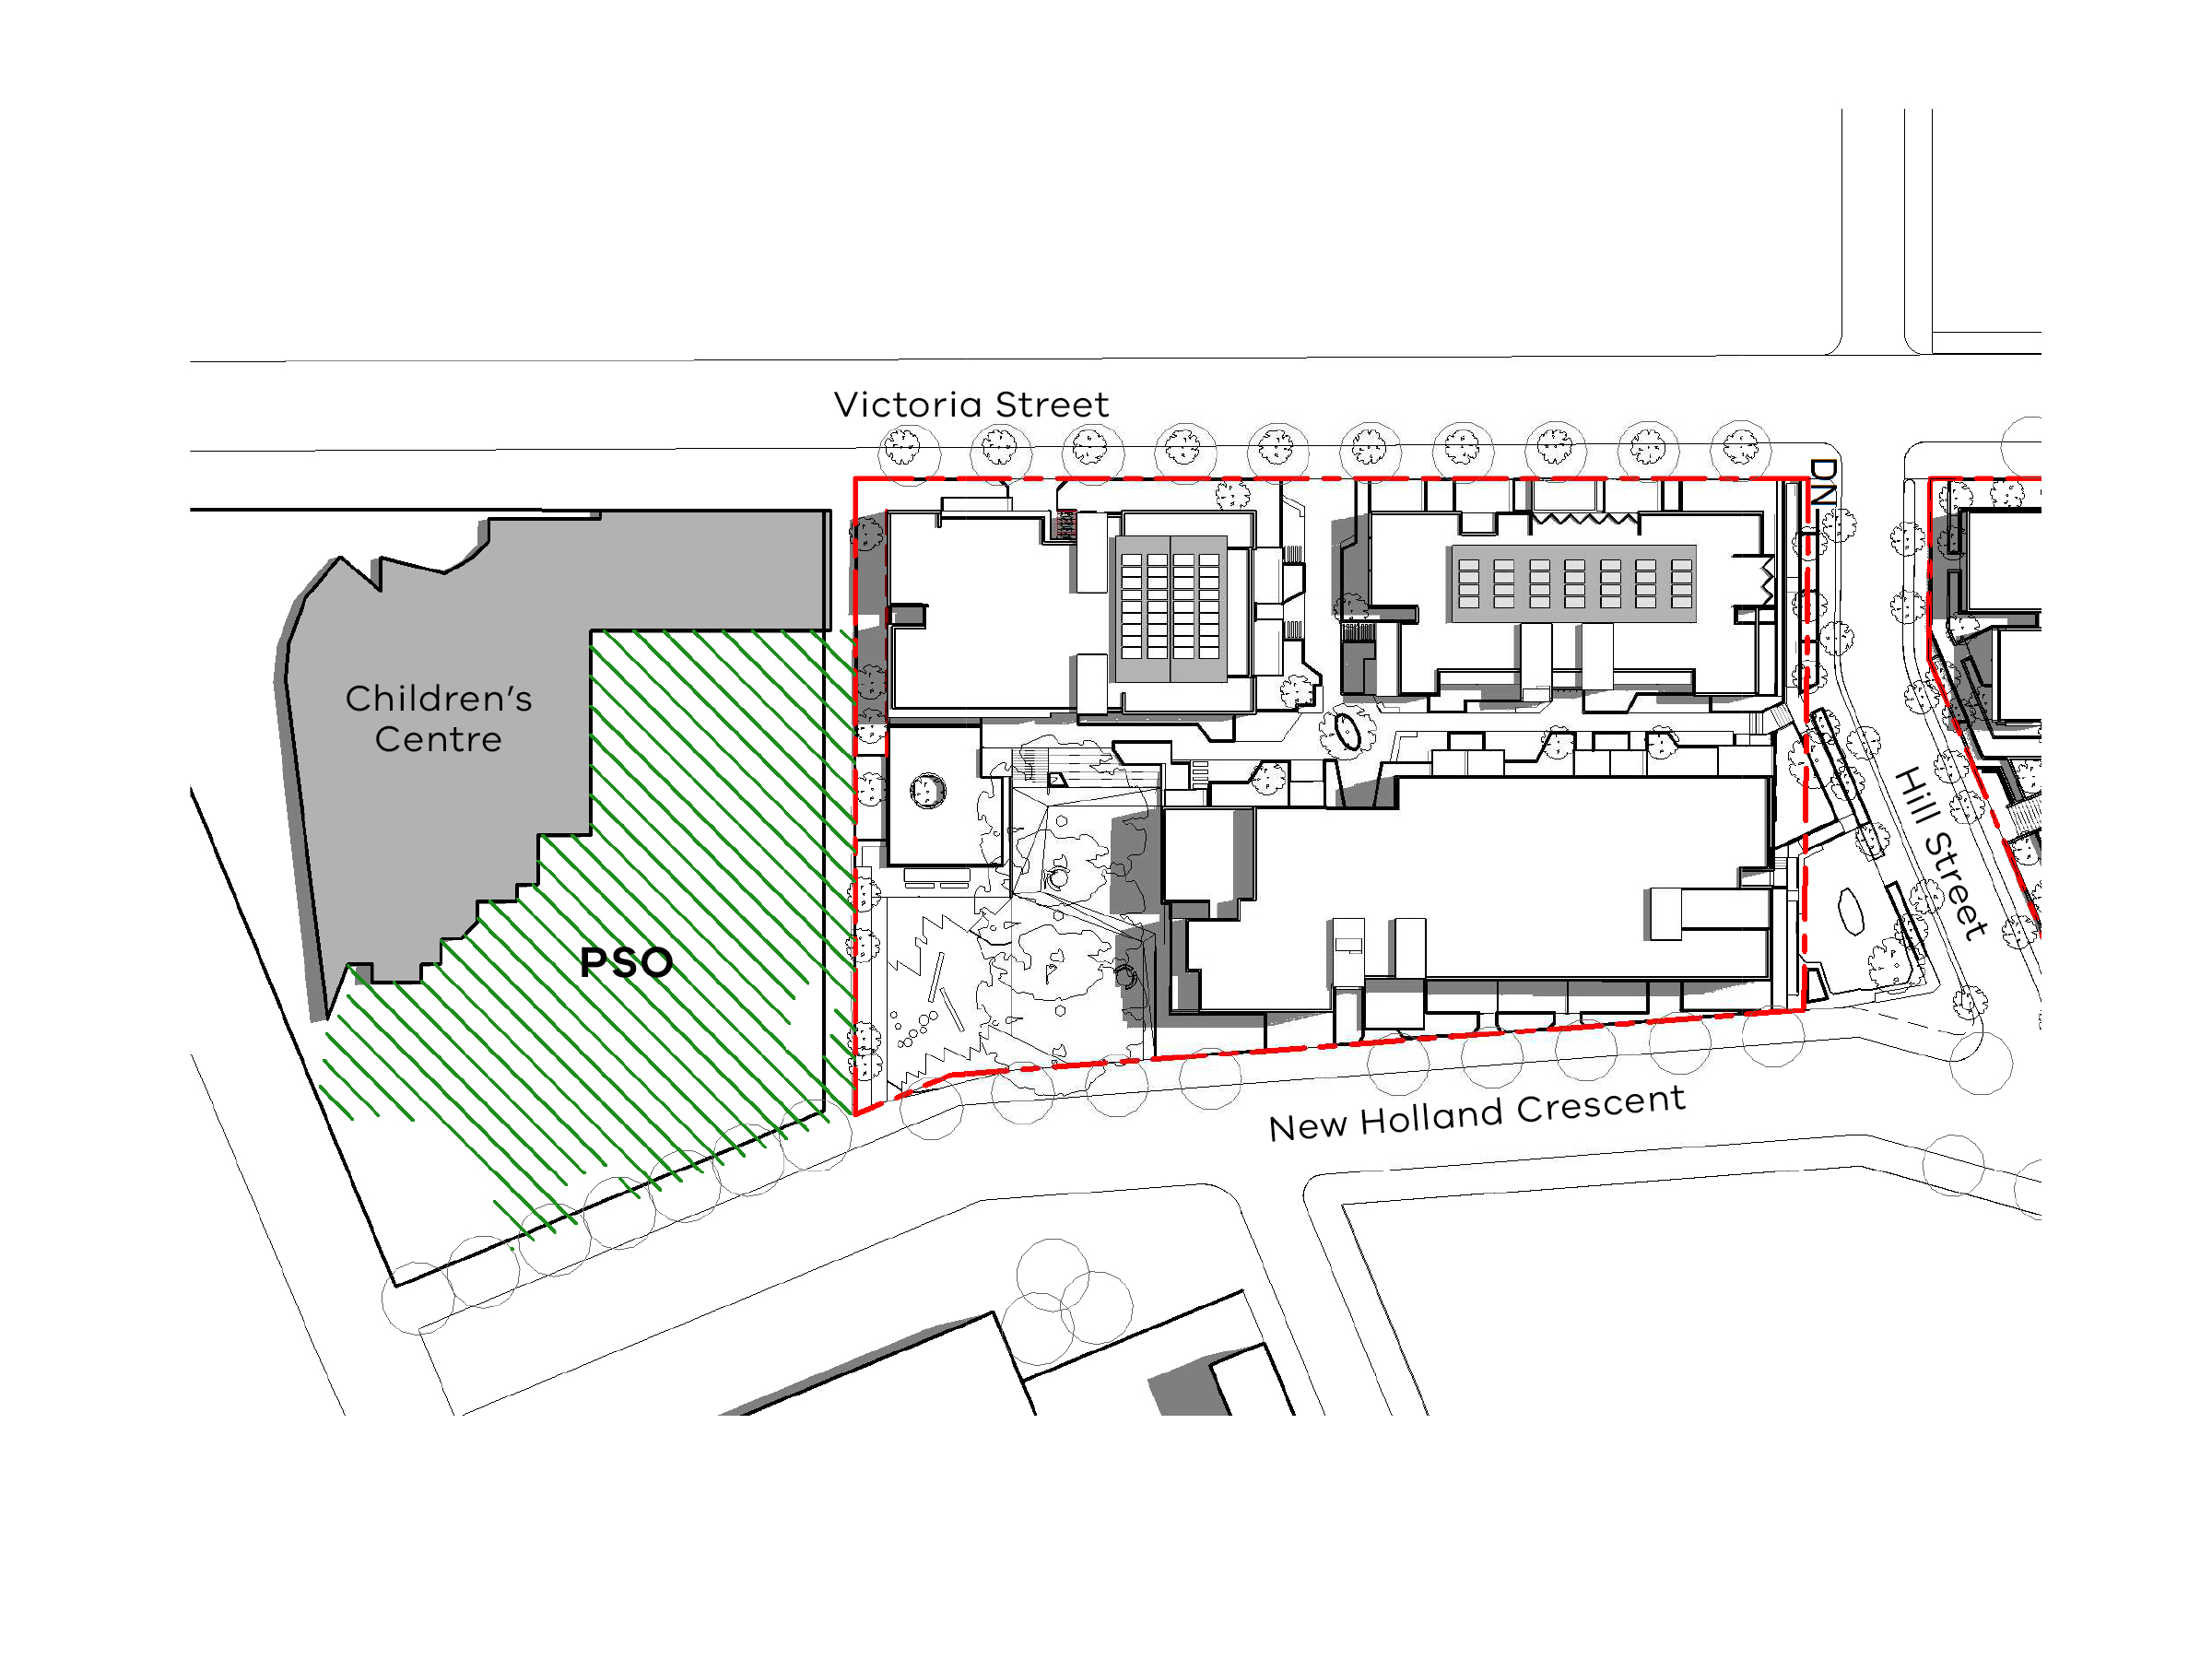 Diagram showing the shadows created by the south site of the new development in September at 12pm